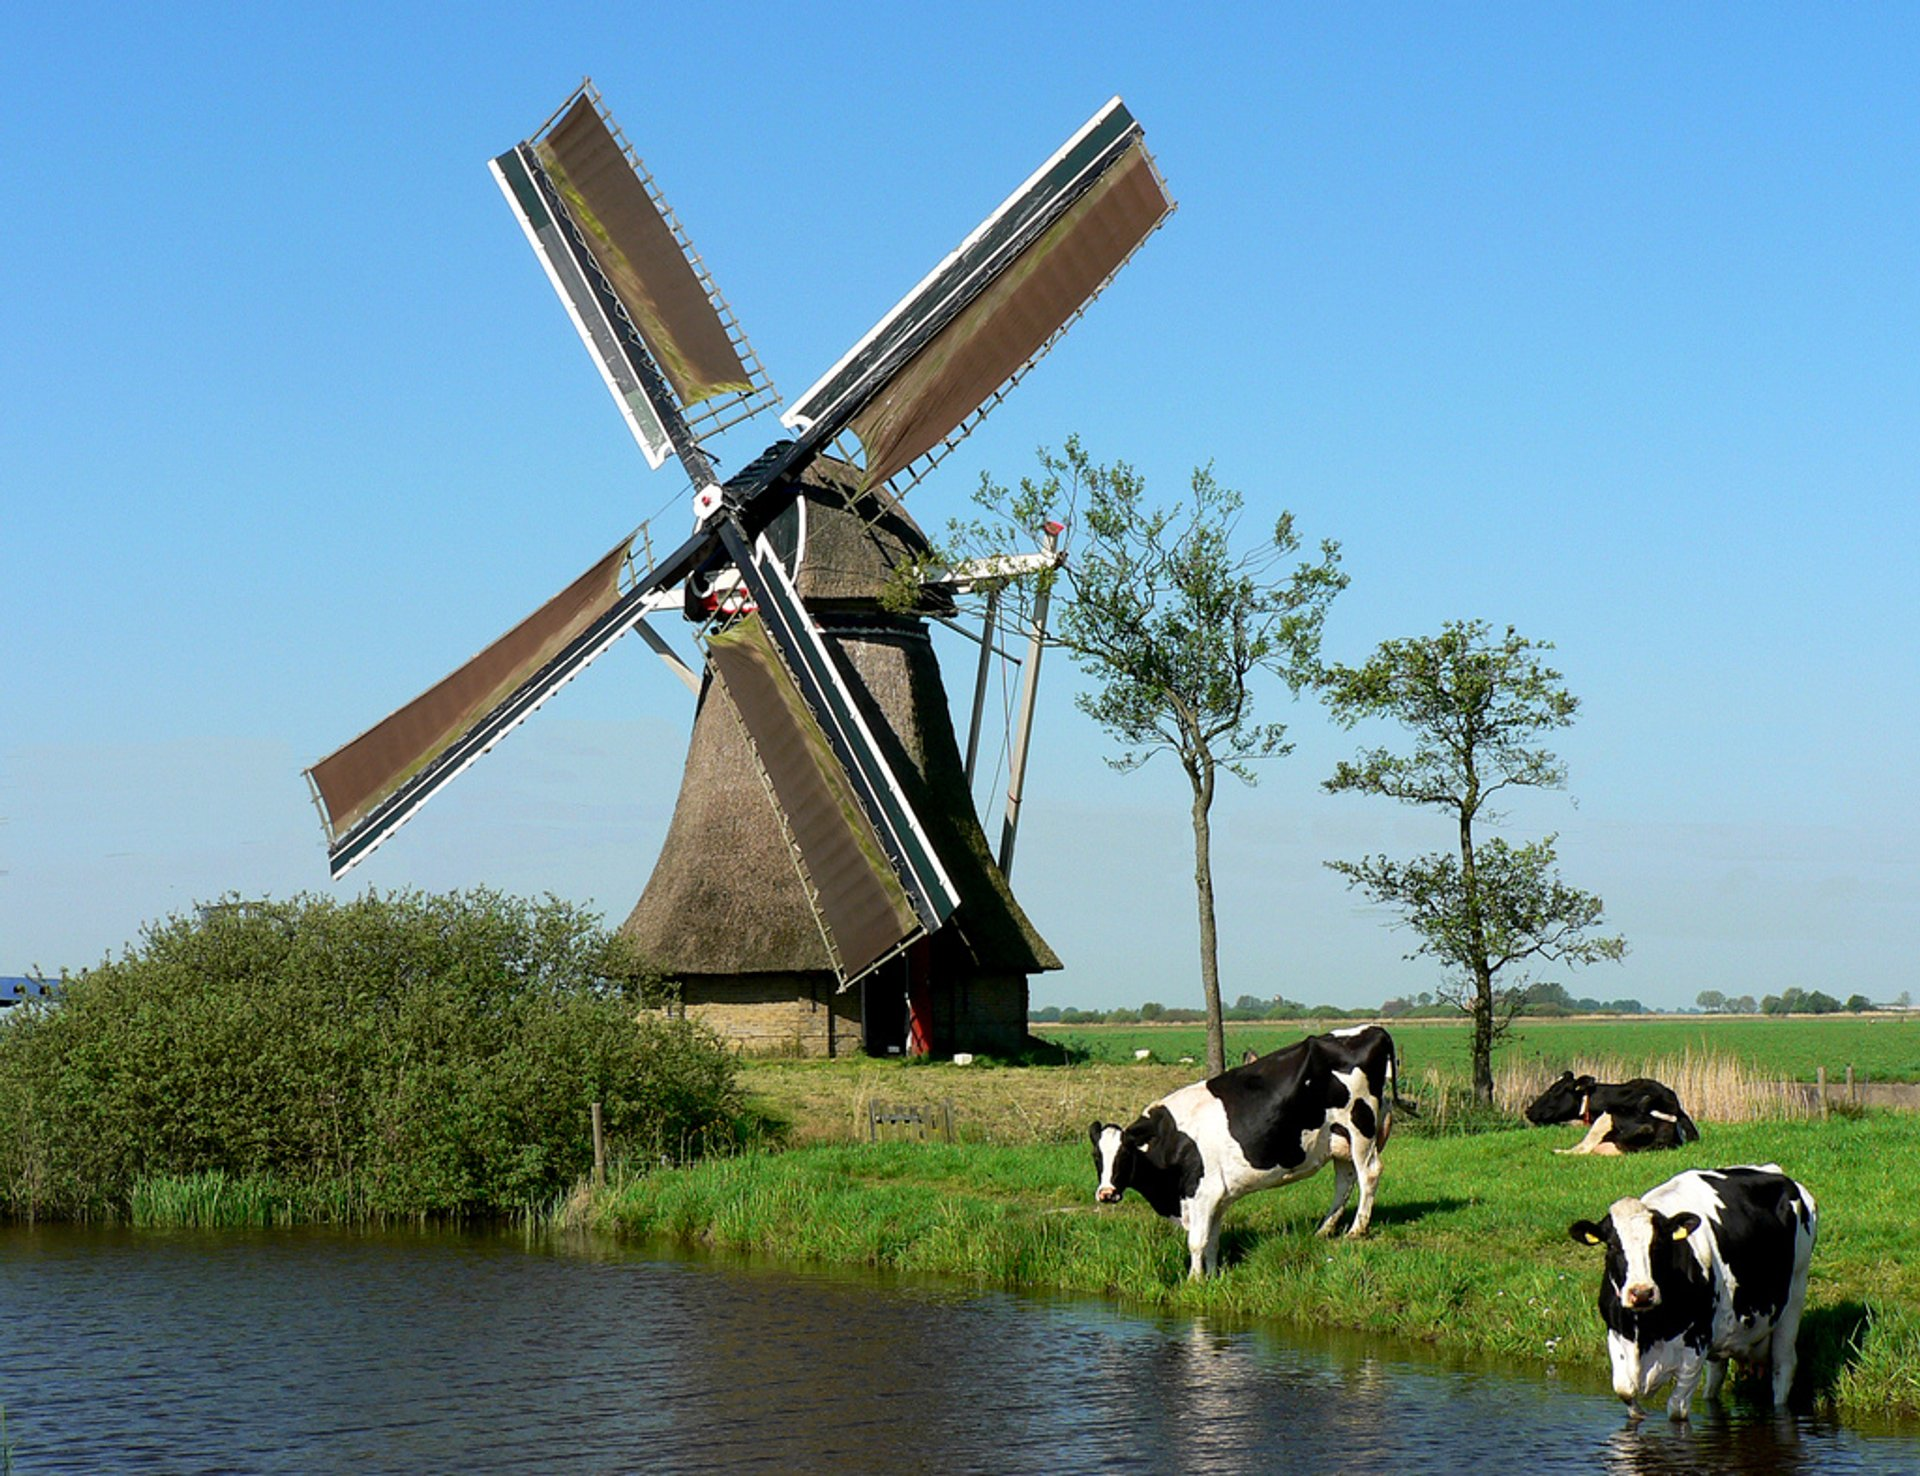 National Mill Day in The Netherlands 2019 - Best Time